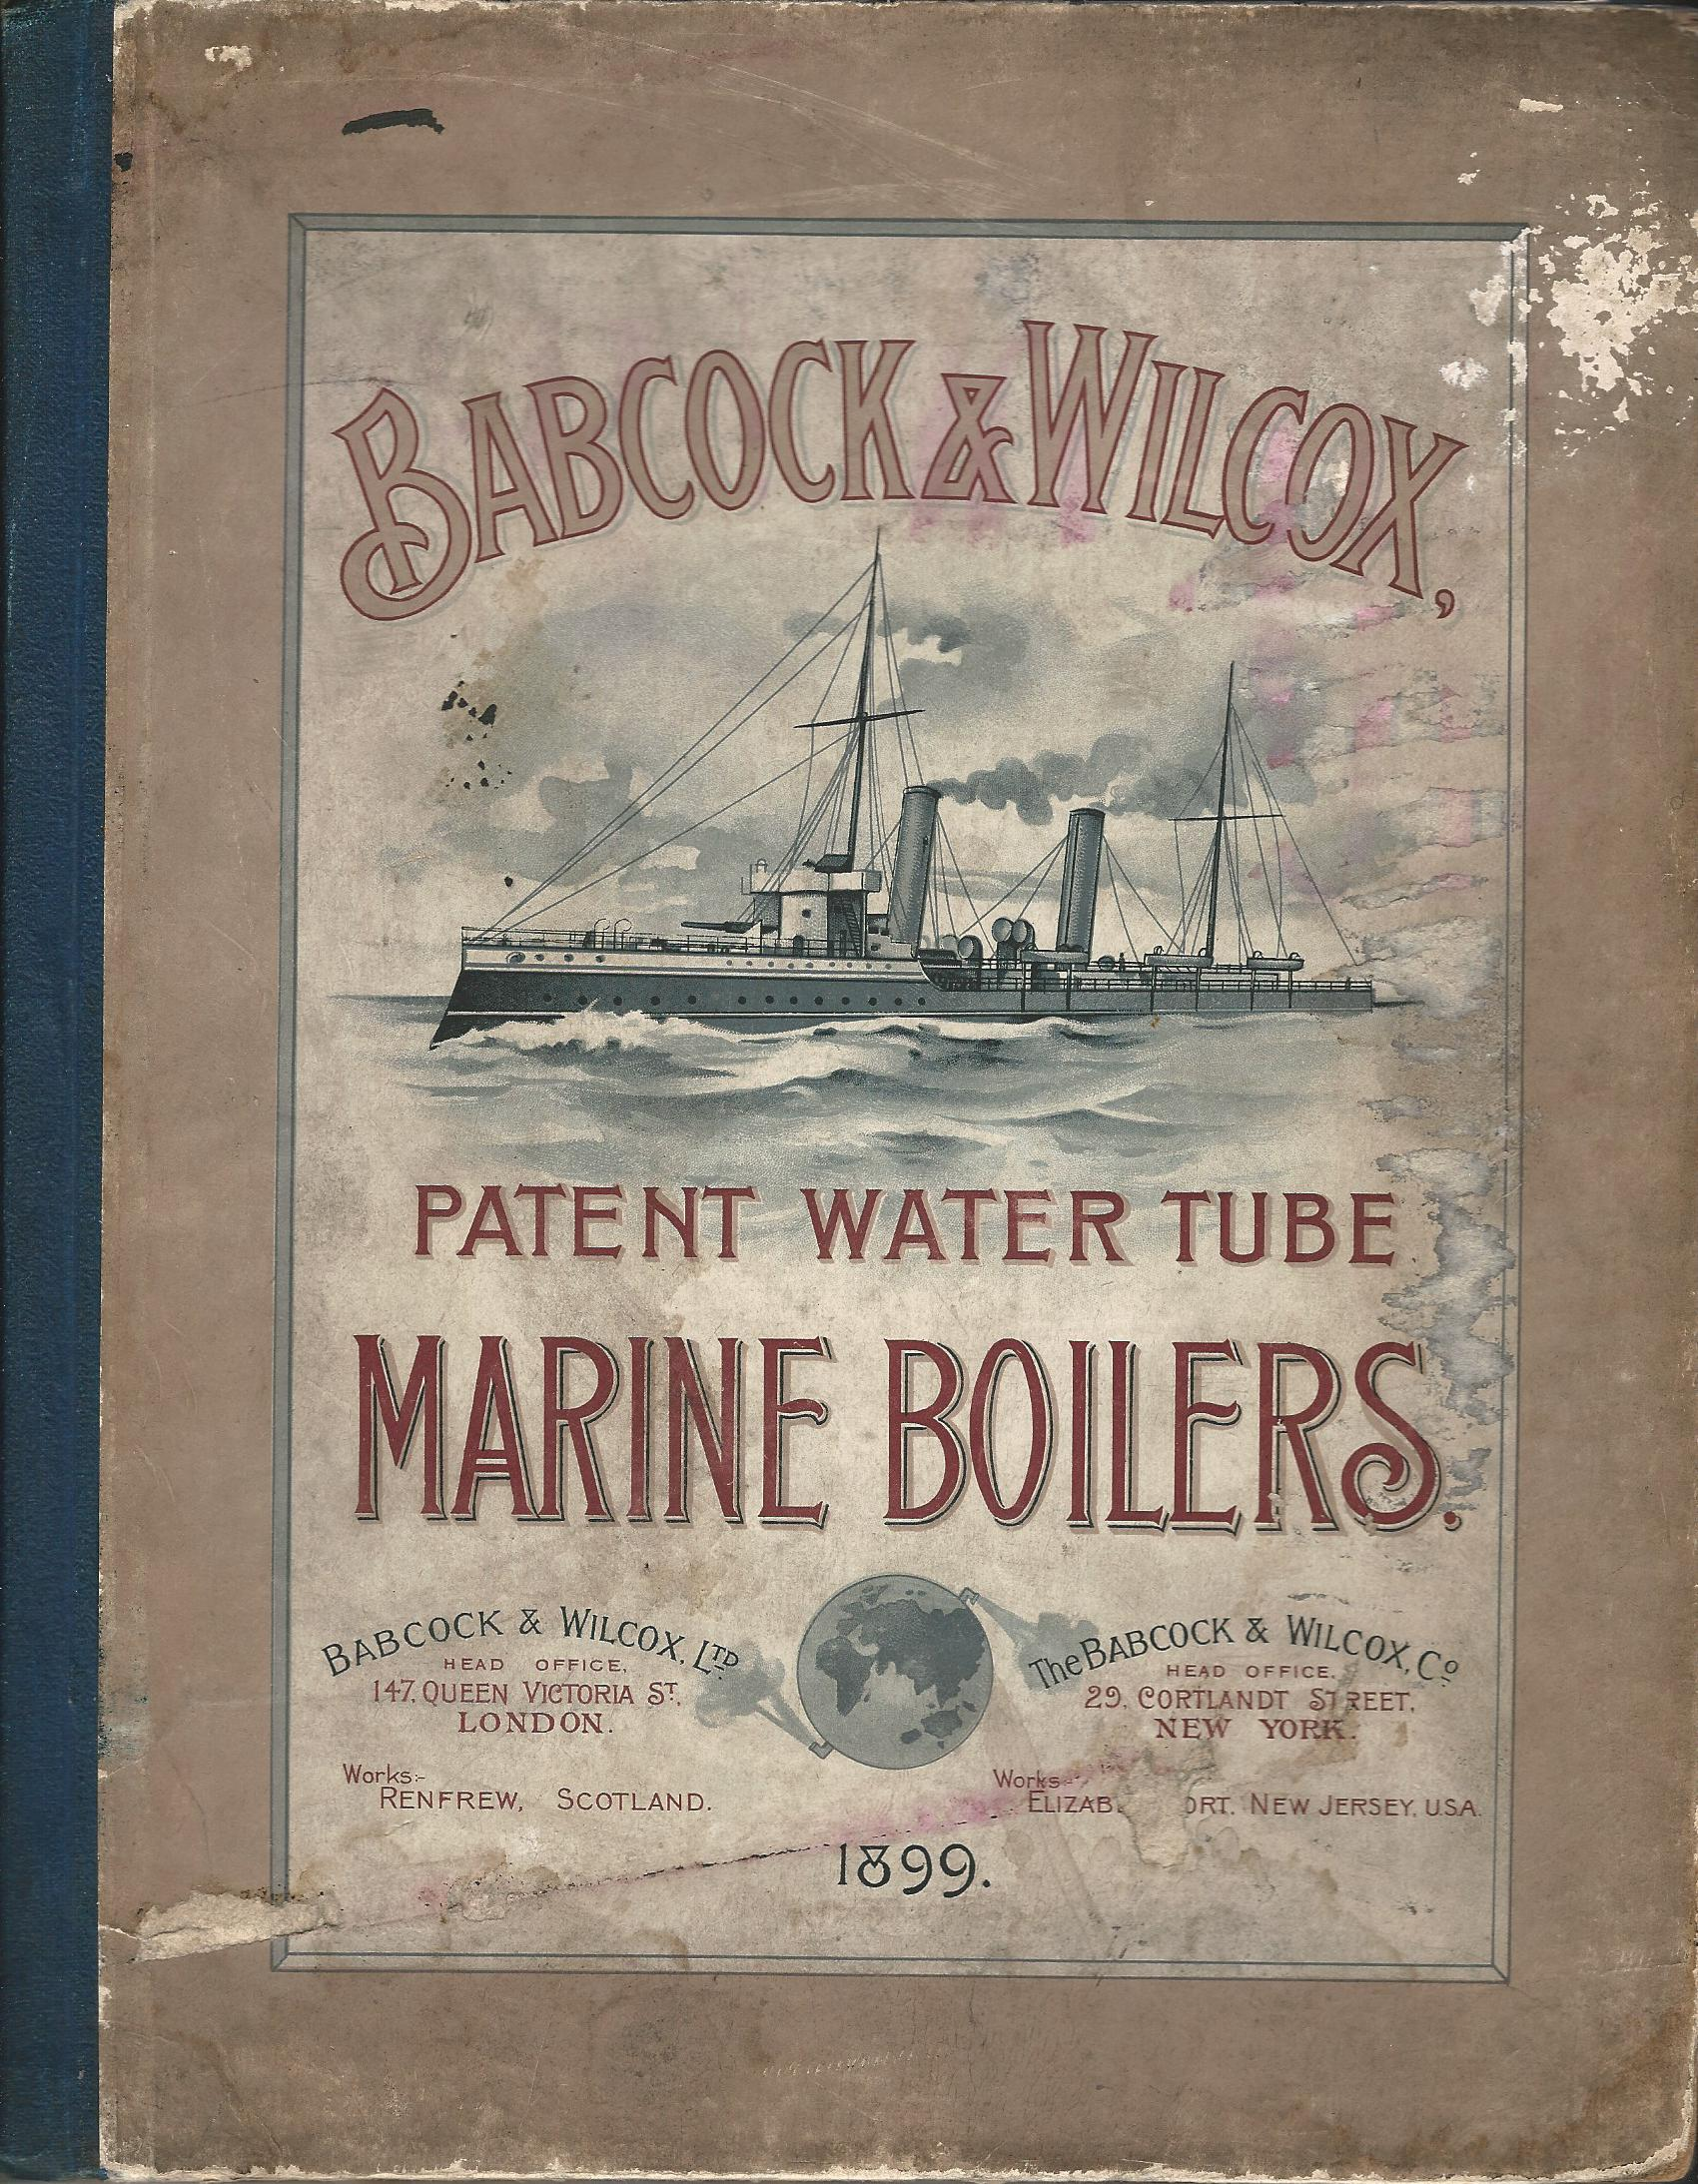 Image for Babcock & Wilcox Patent Water Tube Marine Boilers.